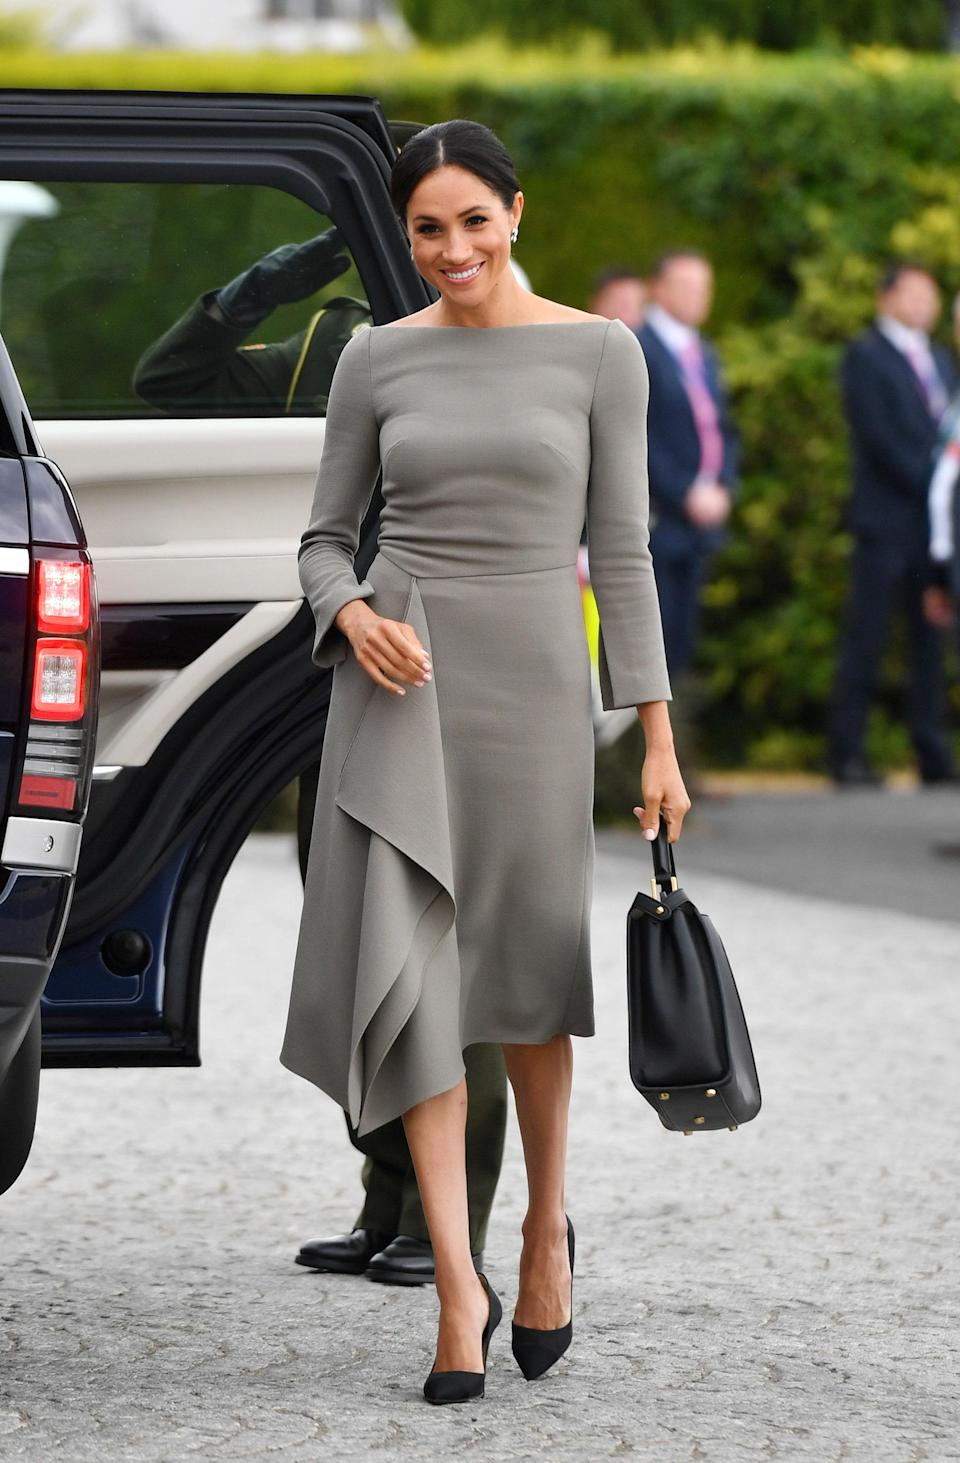 For her second day in Dublin, Meghan opted for a Roland Mouret dress and Fendi bag [Photo: Getty]